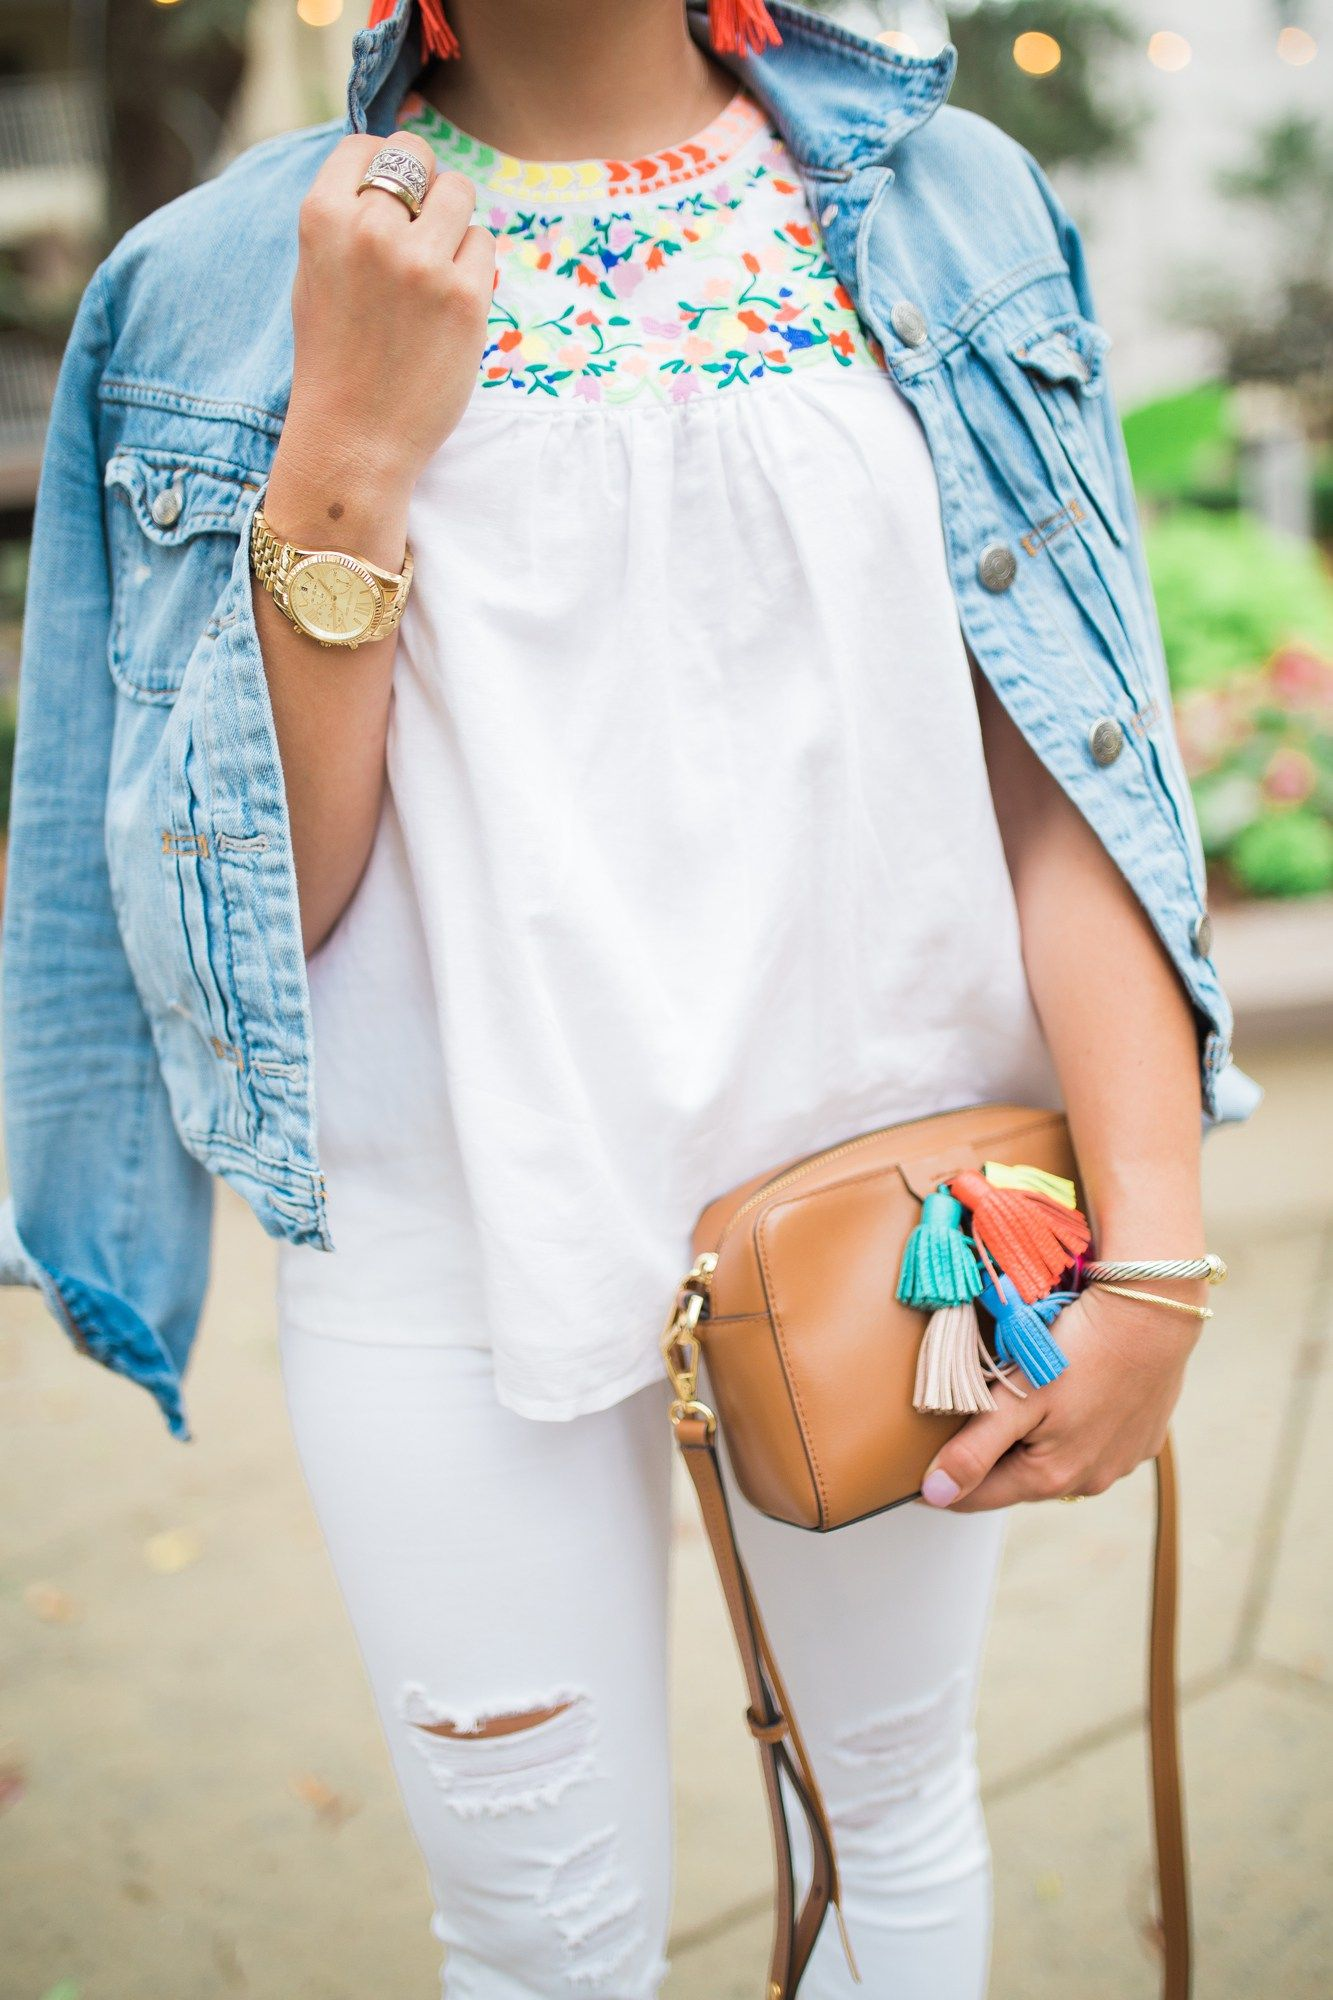 To acquire All outfit white inspiration some style tips picture trends